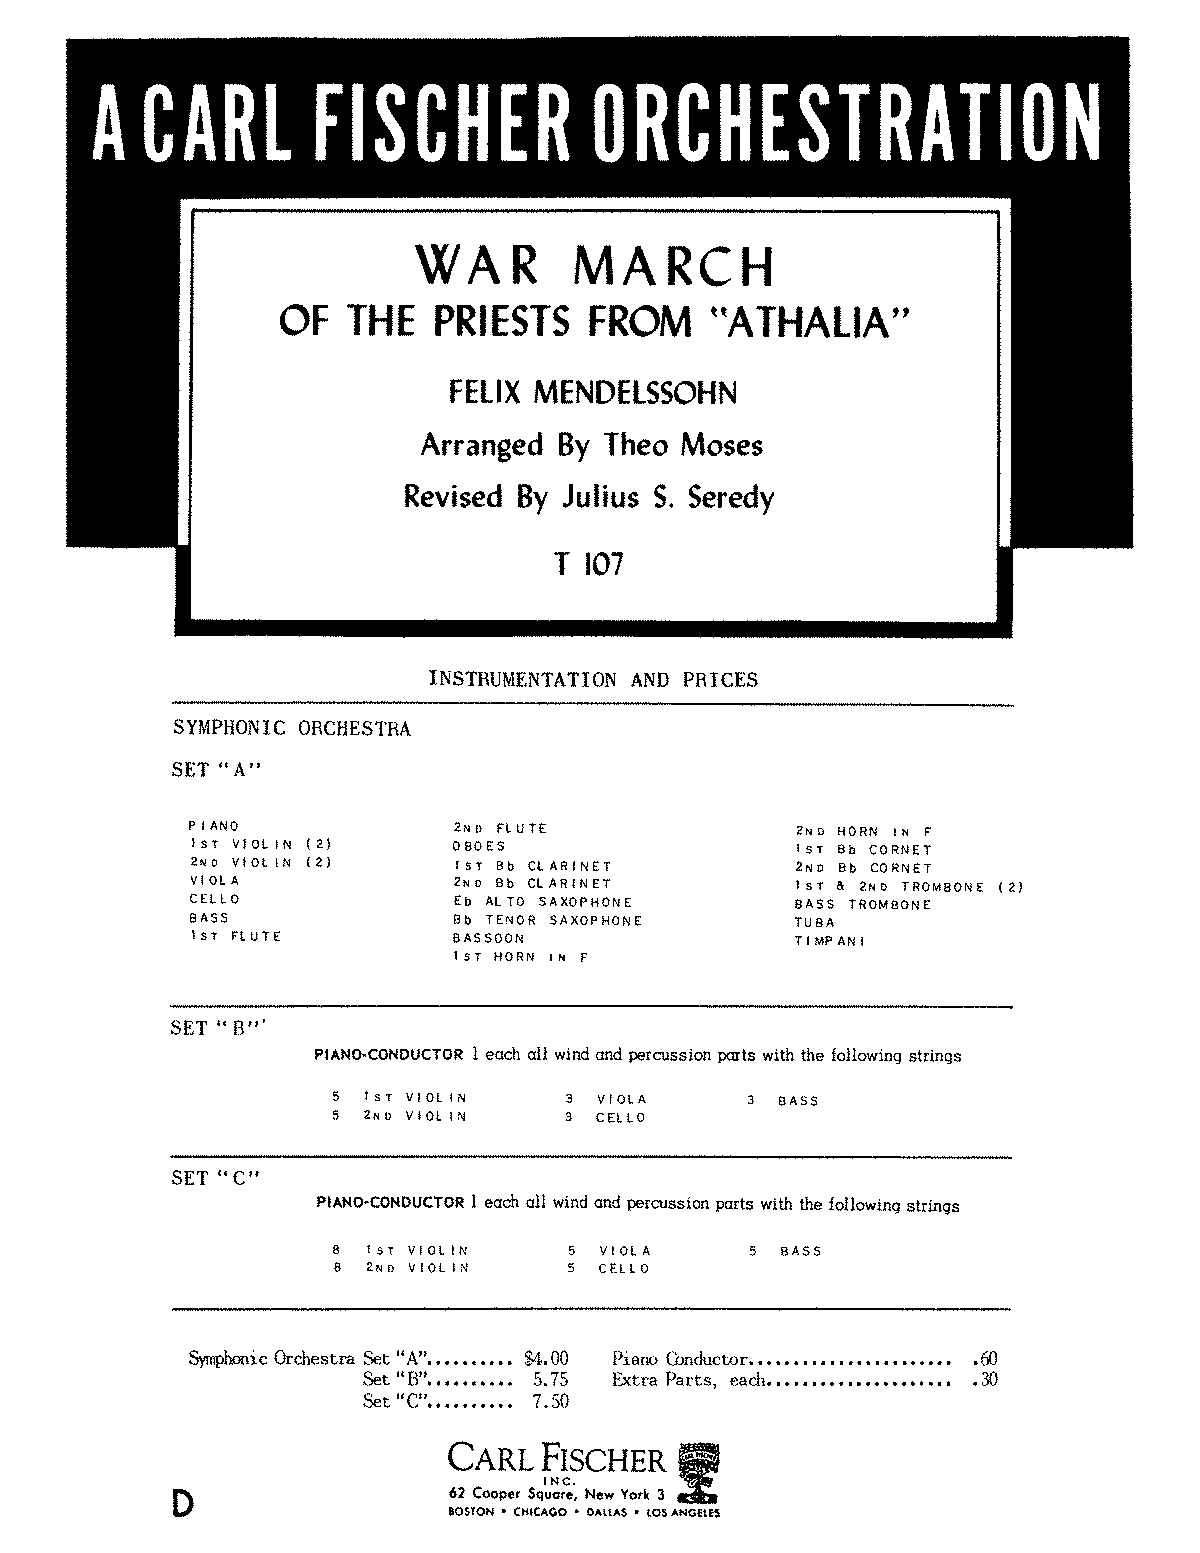 PMLP26822-Mendelssohn Moses arr Seredy rev Athalia Op74 War march Orchestration.pdf